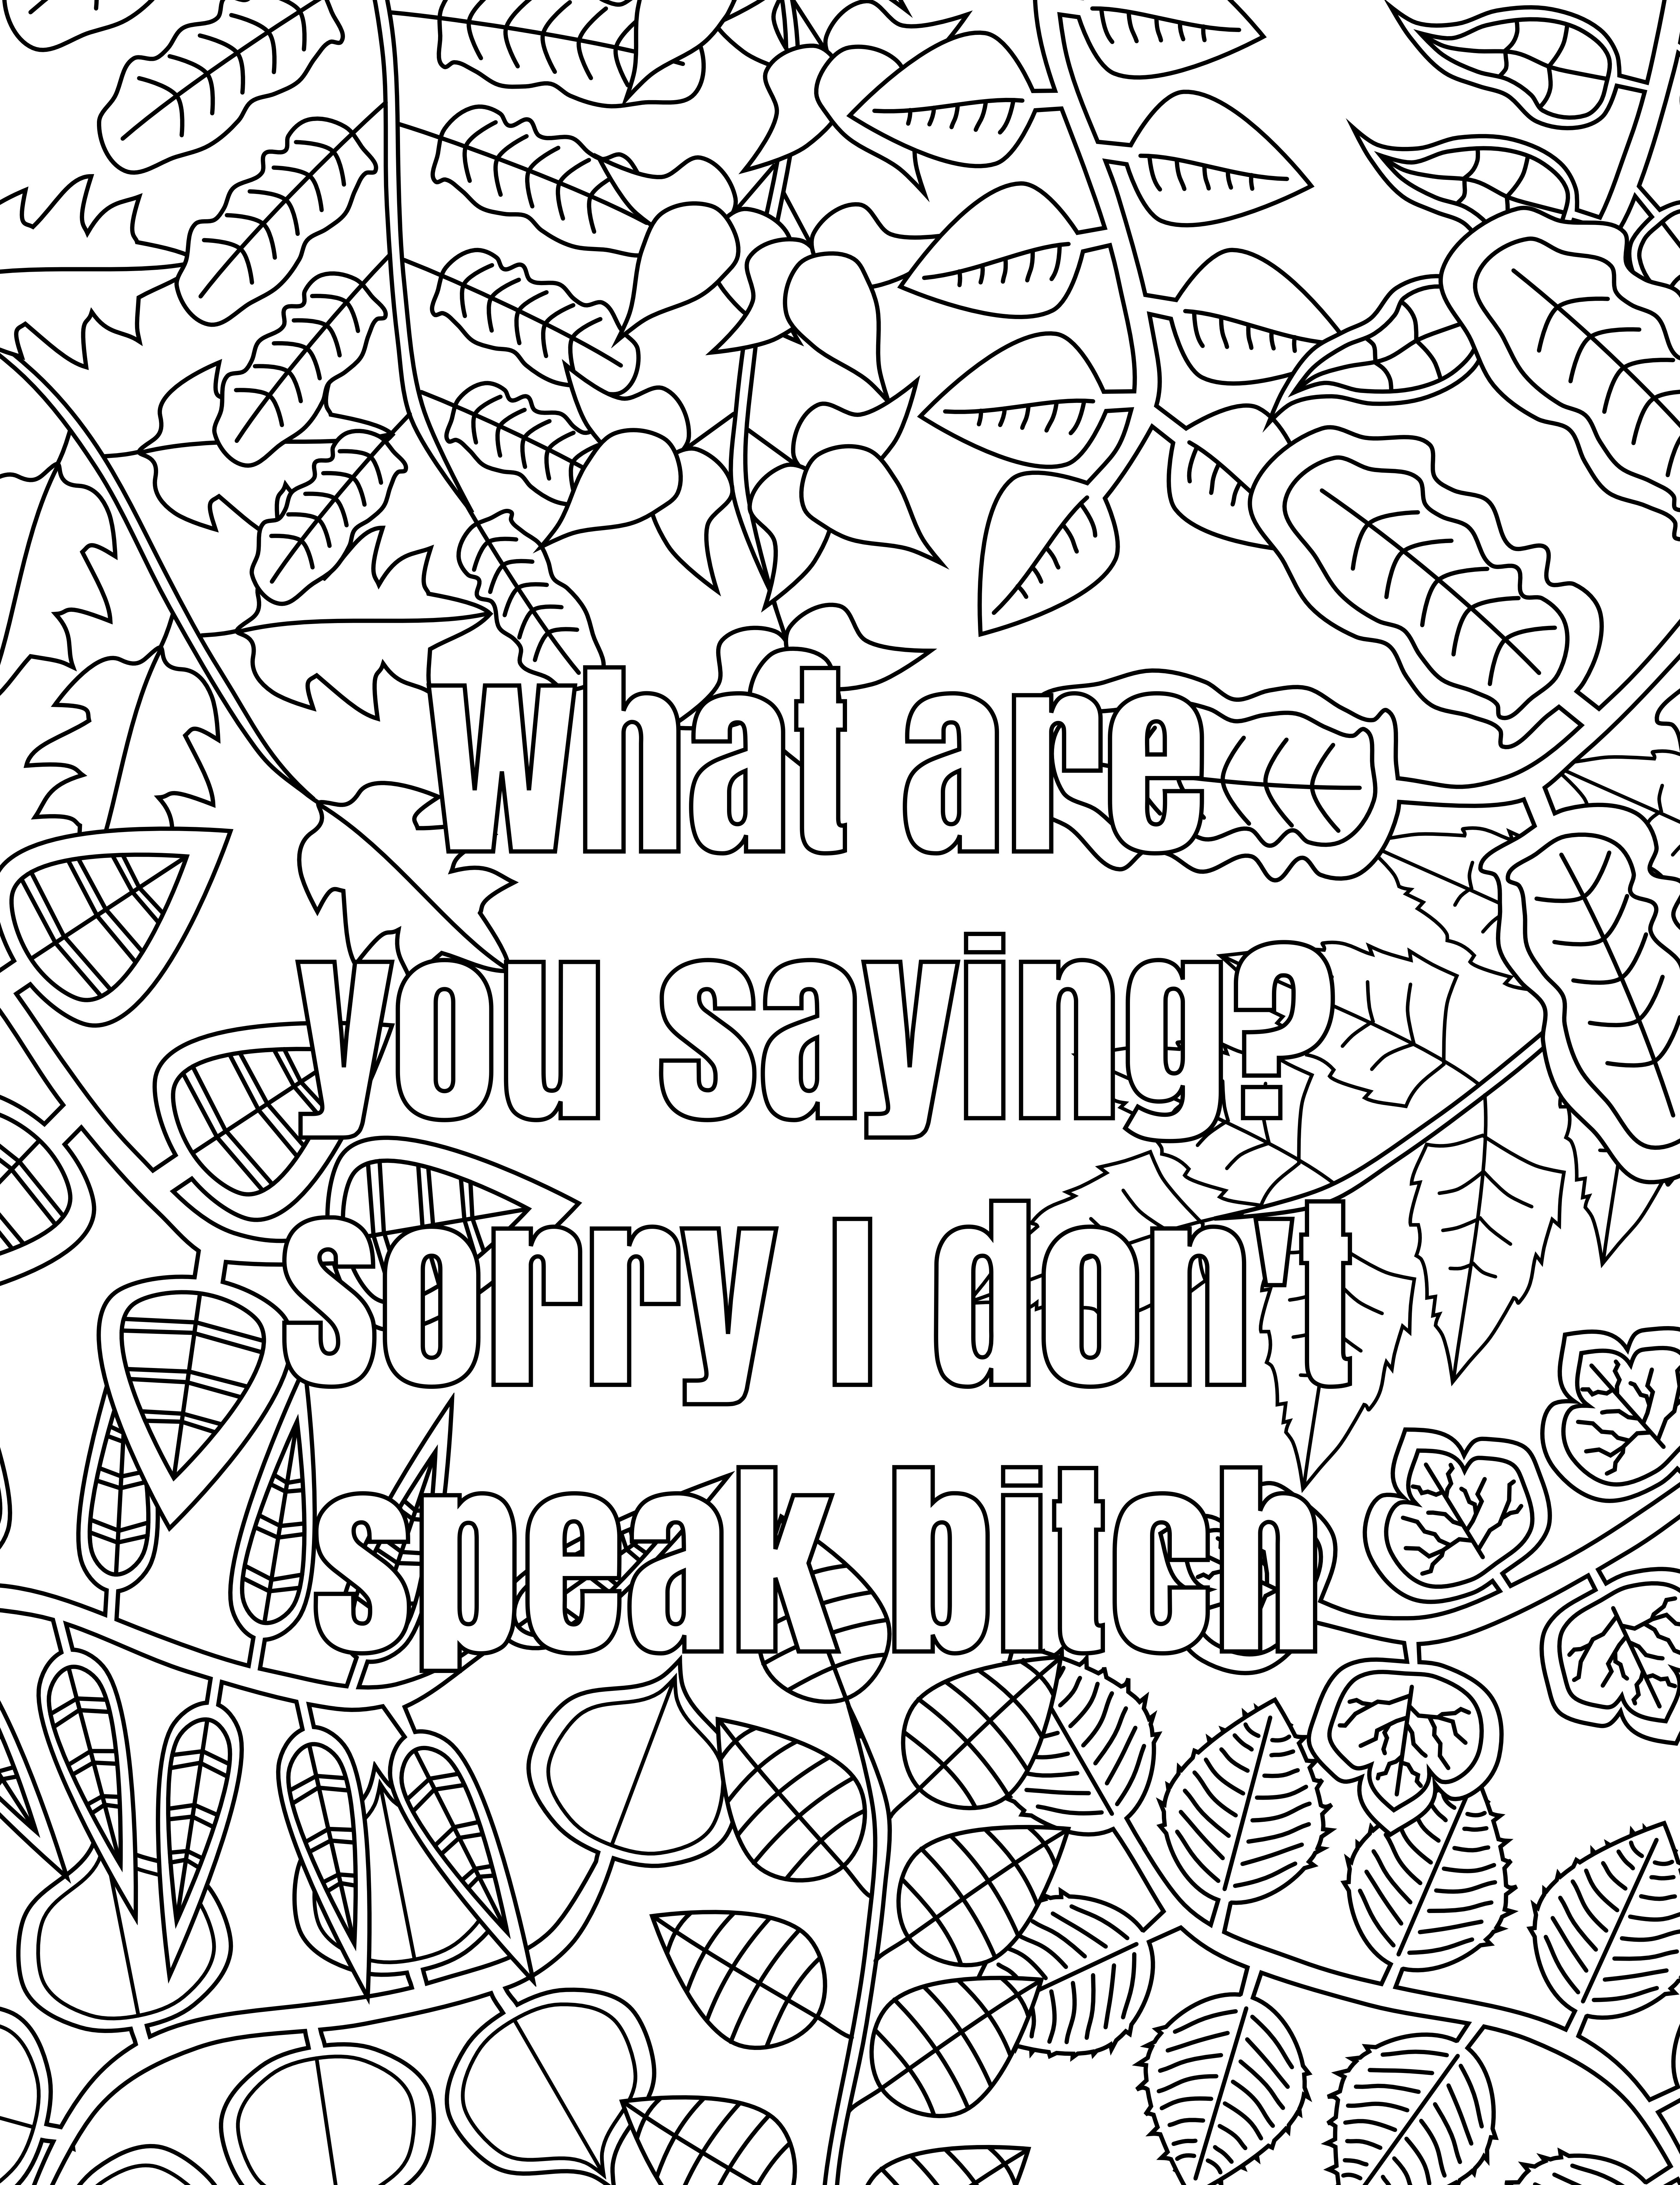 Free Printable Swear Word Coloring Pages | Free Printable